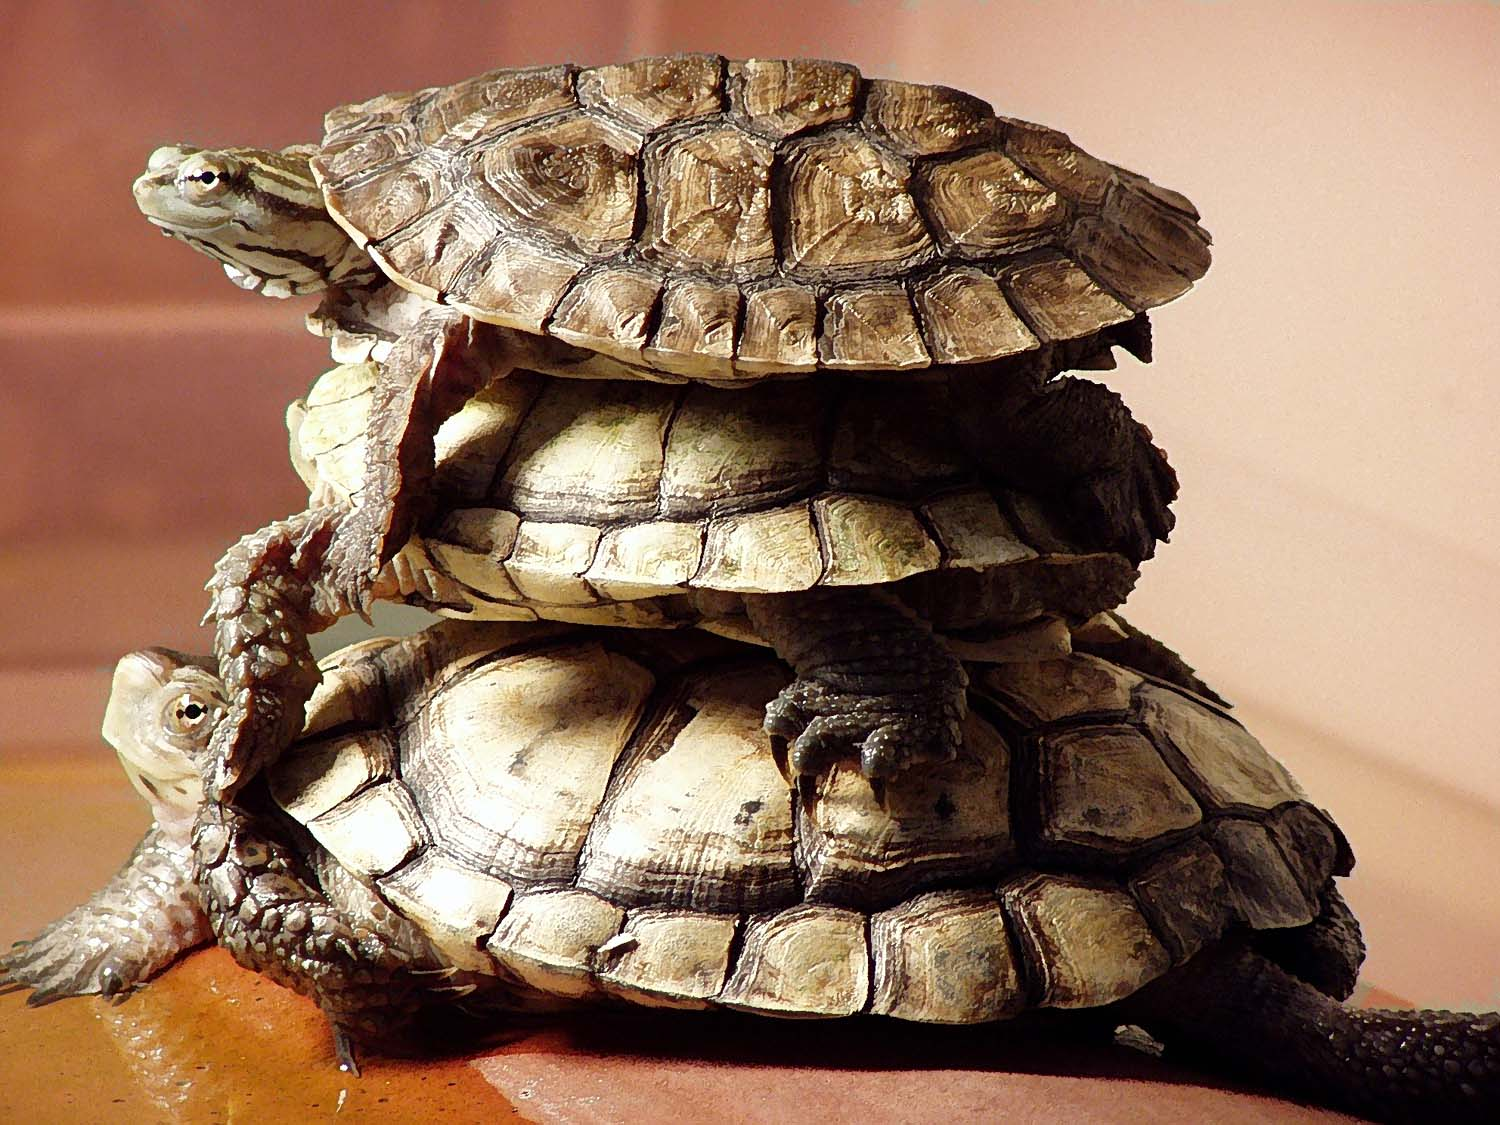 Turtles & tortoises | Garden Delights Arts & Crafts